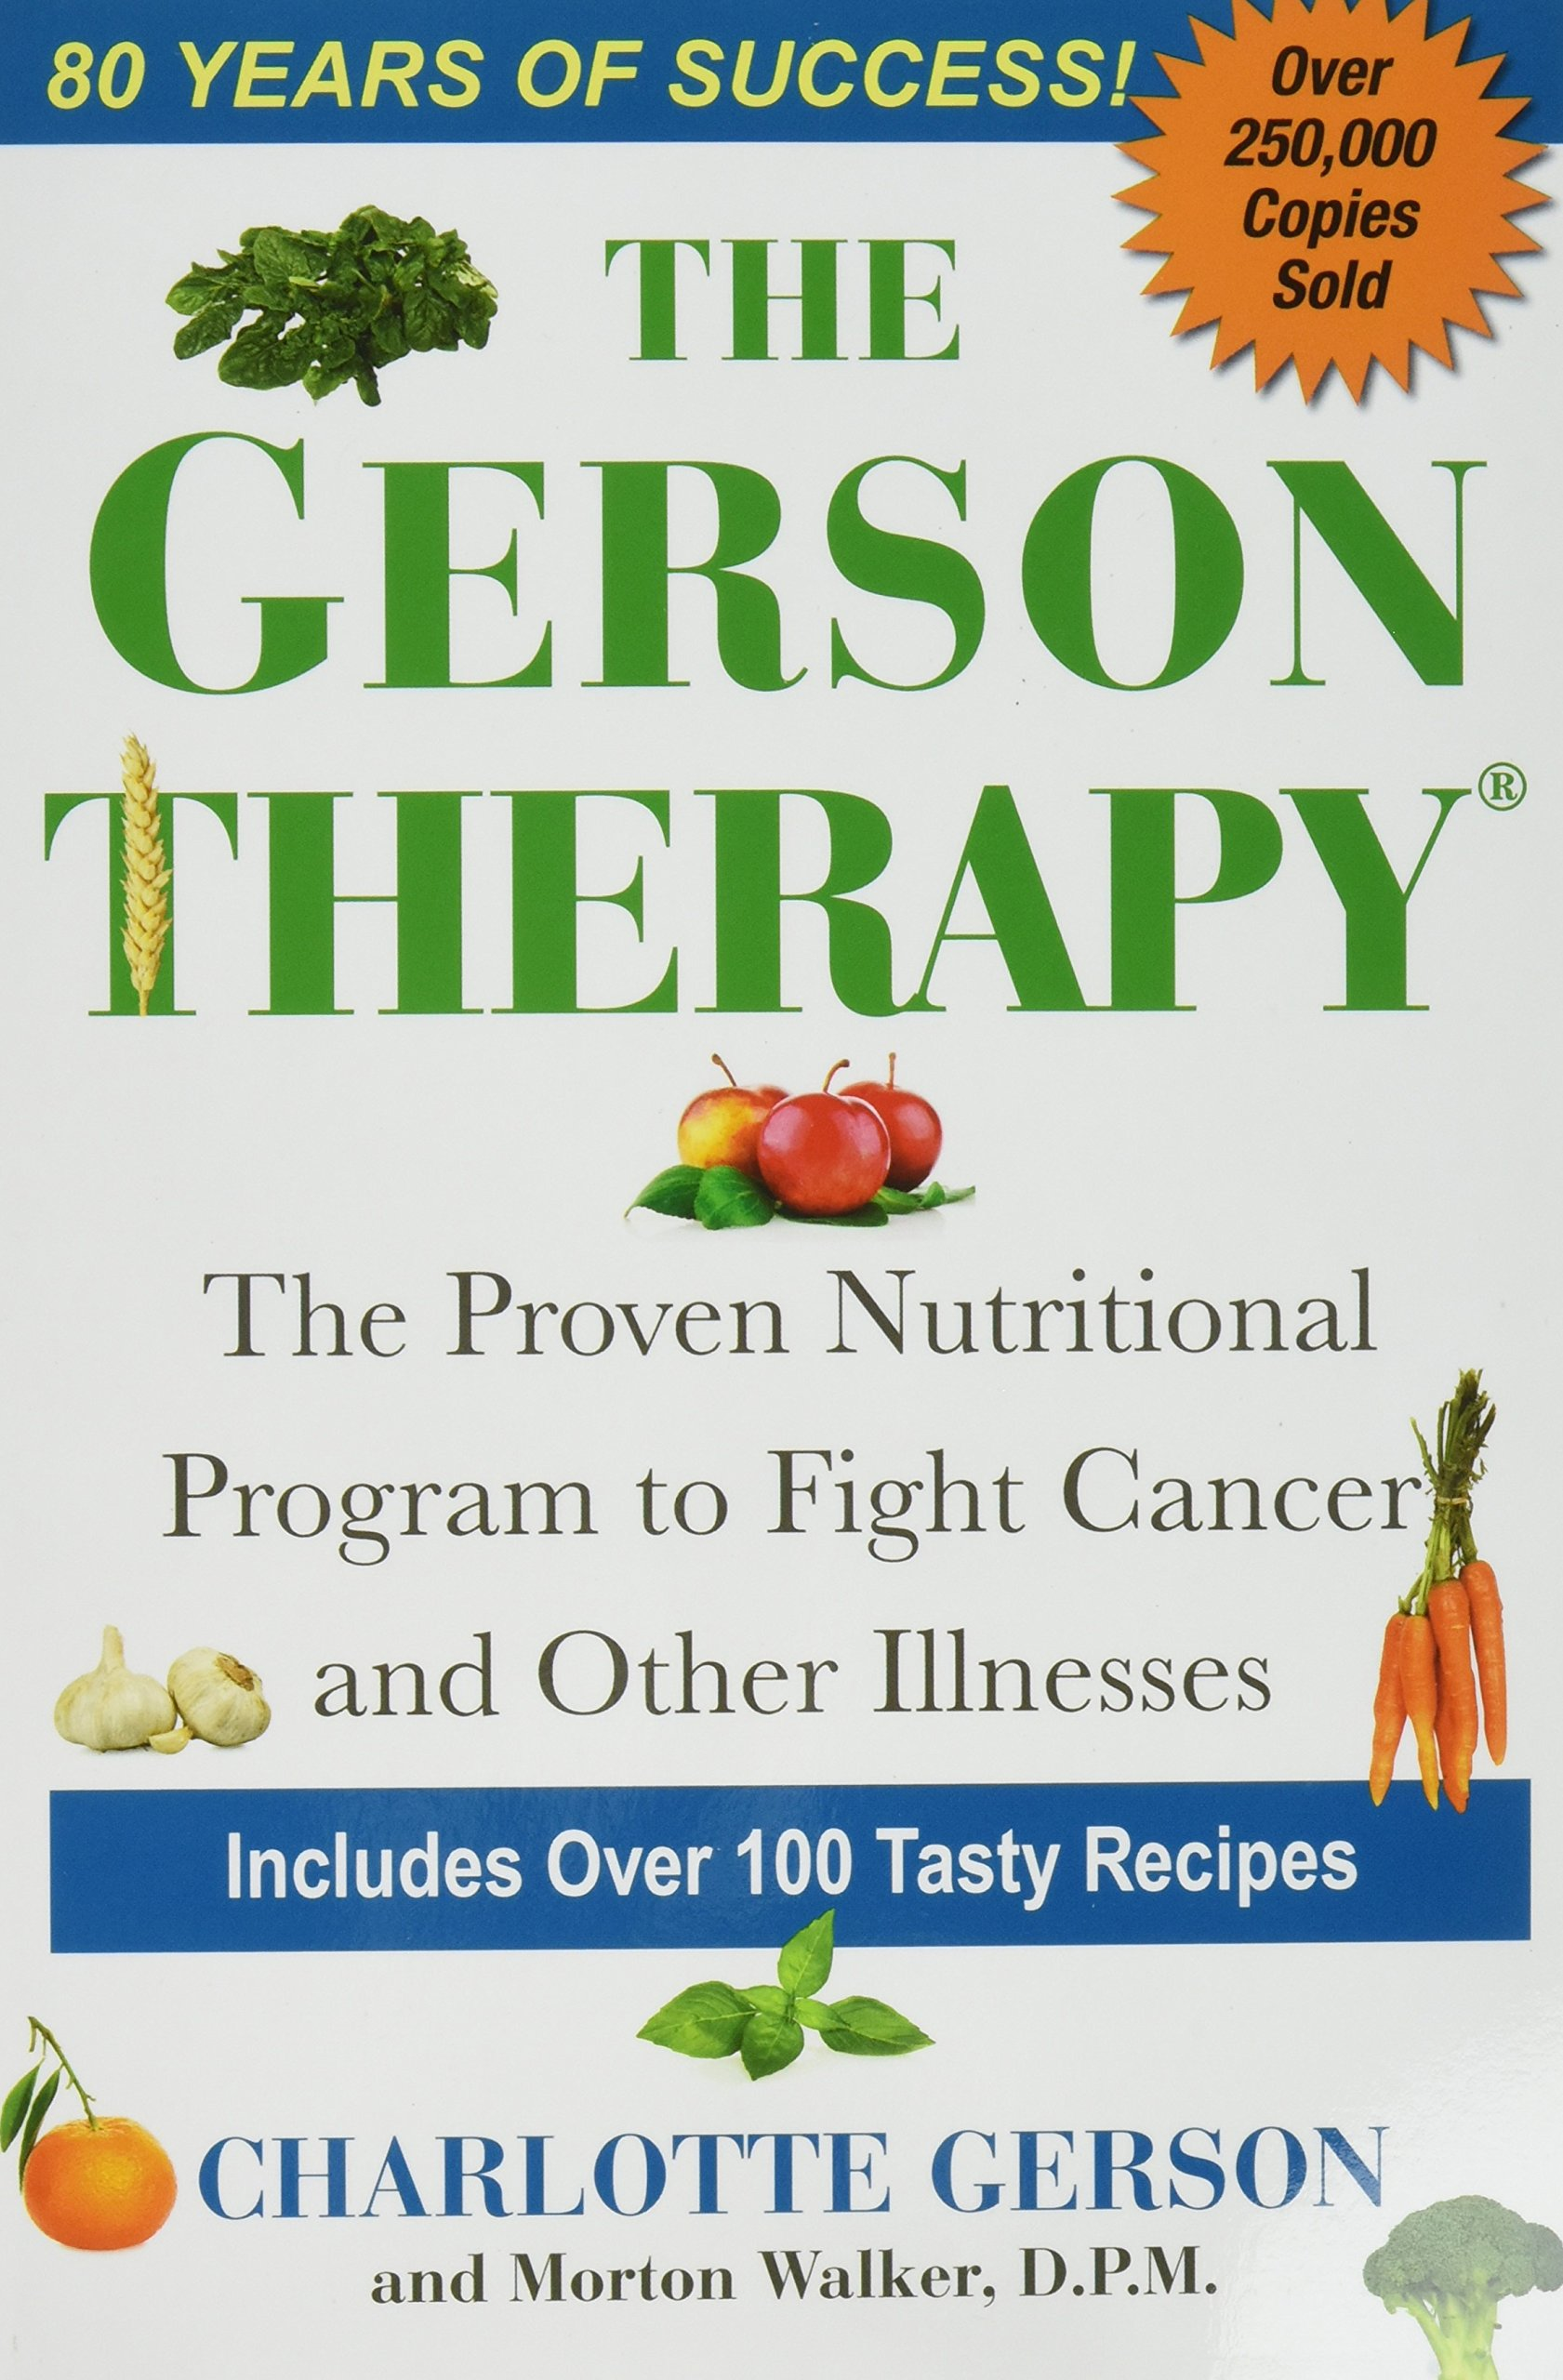 Miracle therapy gerson 72